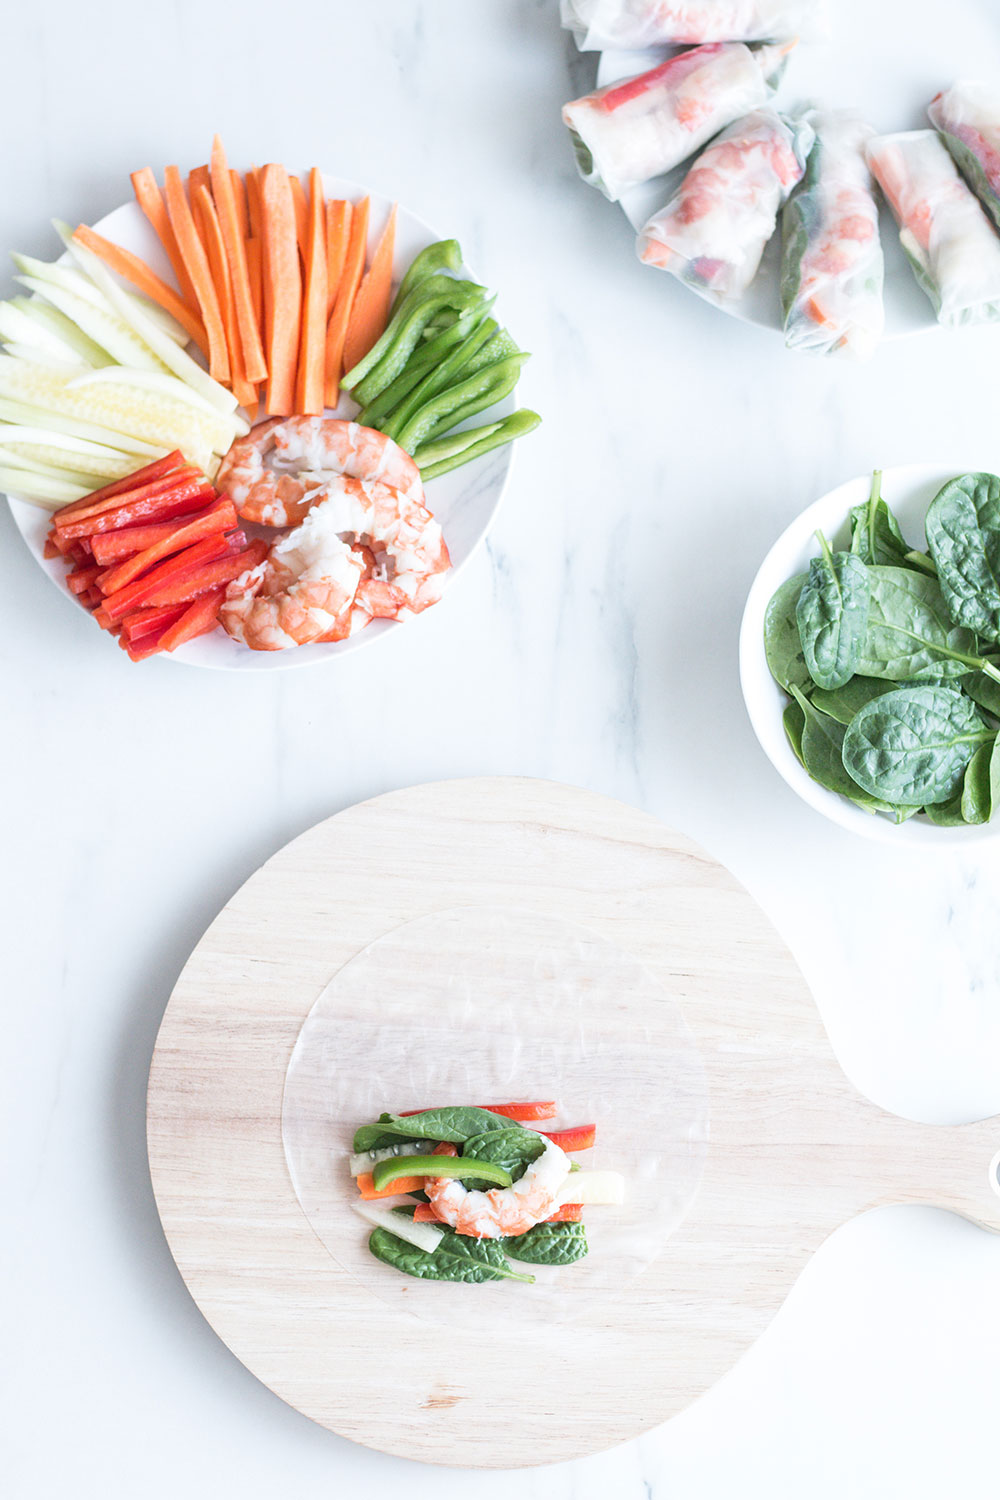 Shrimp Summer Rolls Recipe: Low fat and calorie content, perfect to help you shed excess weight and leave you feeling full for longer! https://www.spotebi.com/recipes/shrimp-summer-rolls/